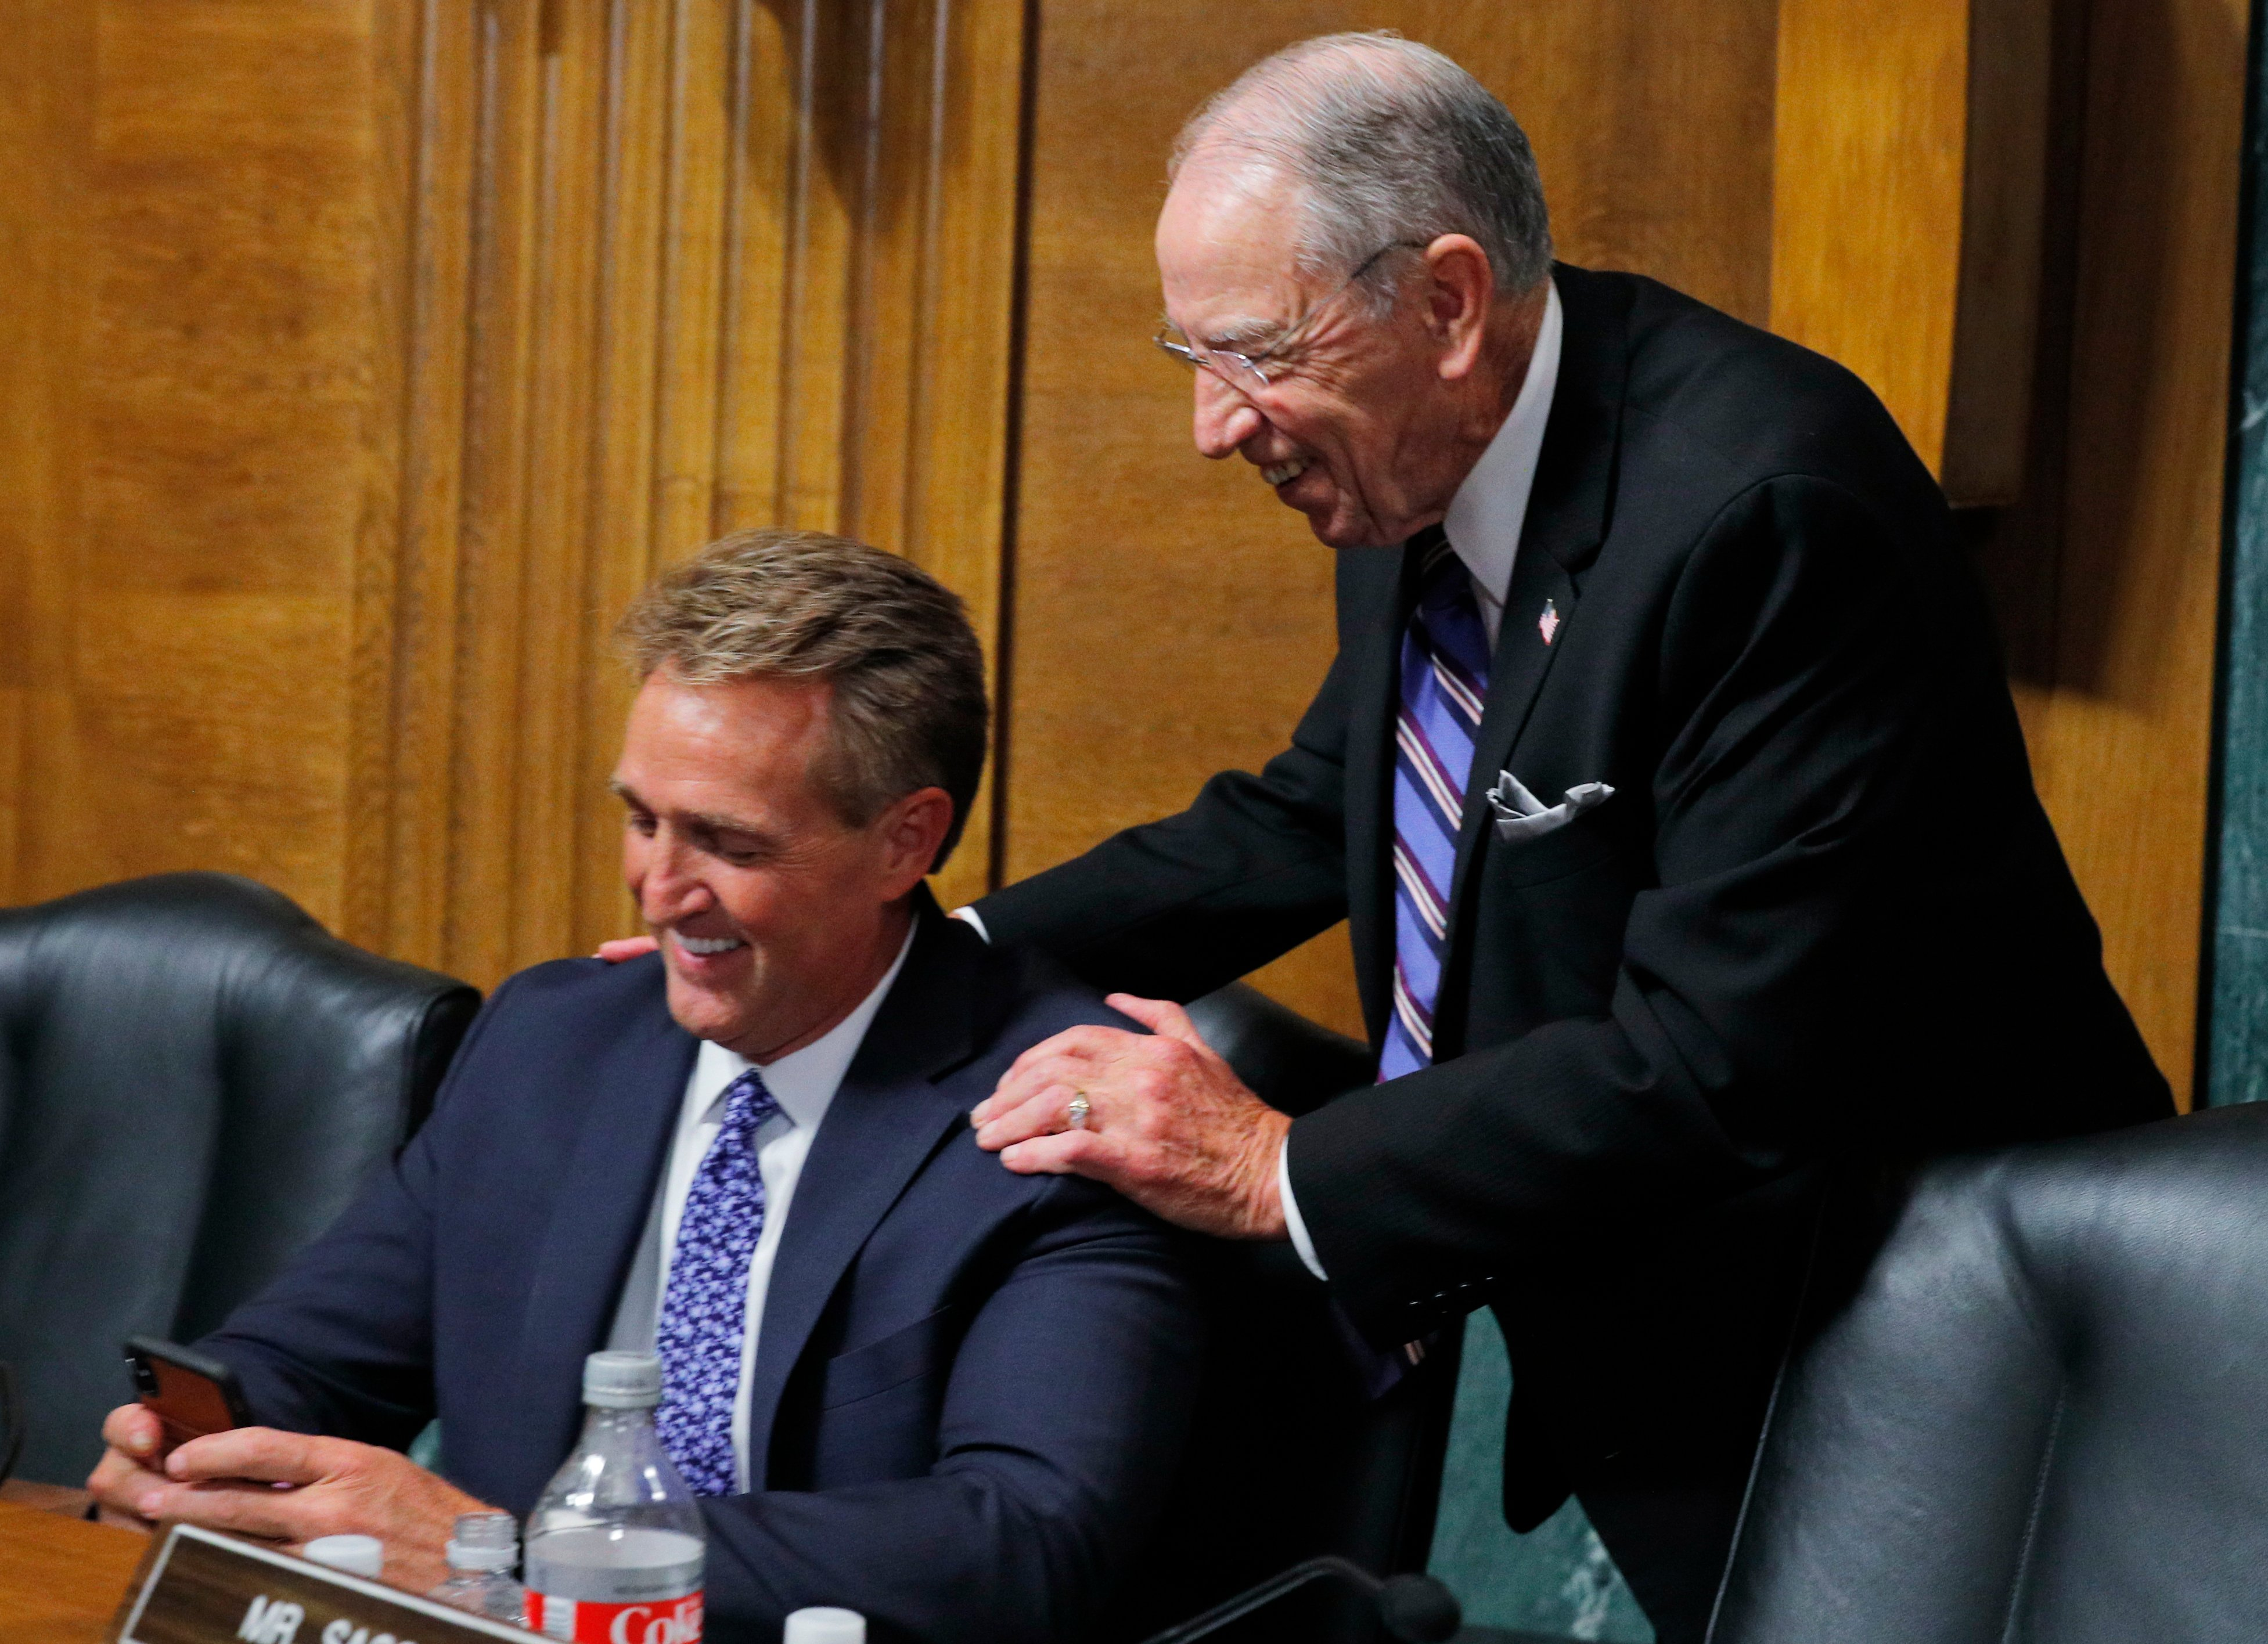 Senator Jeff Flake speaks with Senator Chuck Grassley during Judge Brett Kavanaugh's testimony before the Senate Judiciary Committee during his Supreme Court confirmation hearing in the Dirksen Senate Office Building on Capitol Hill September 27, 2018 (Jim Bourg-Pool/Getty Images)